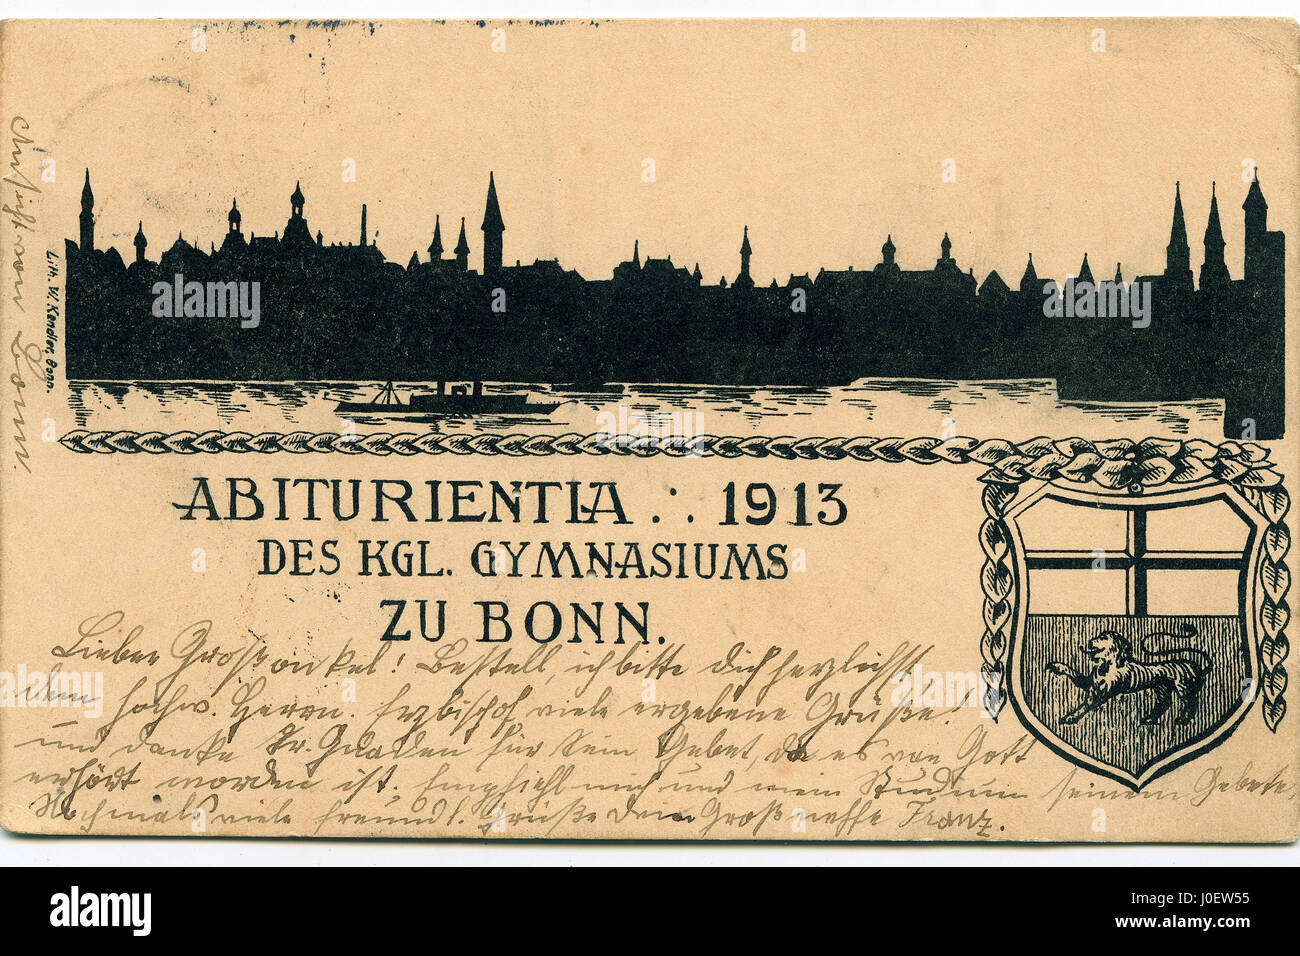 Postcard germany, postage stamps - Stock Image